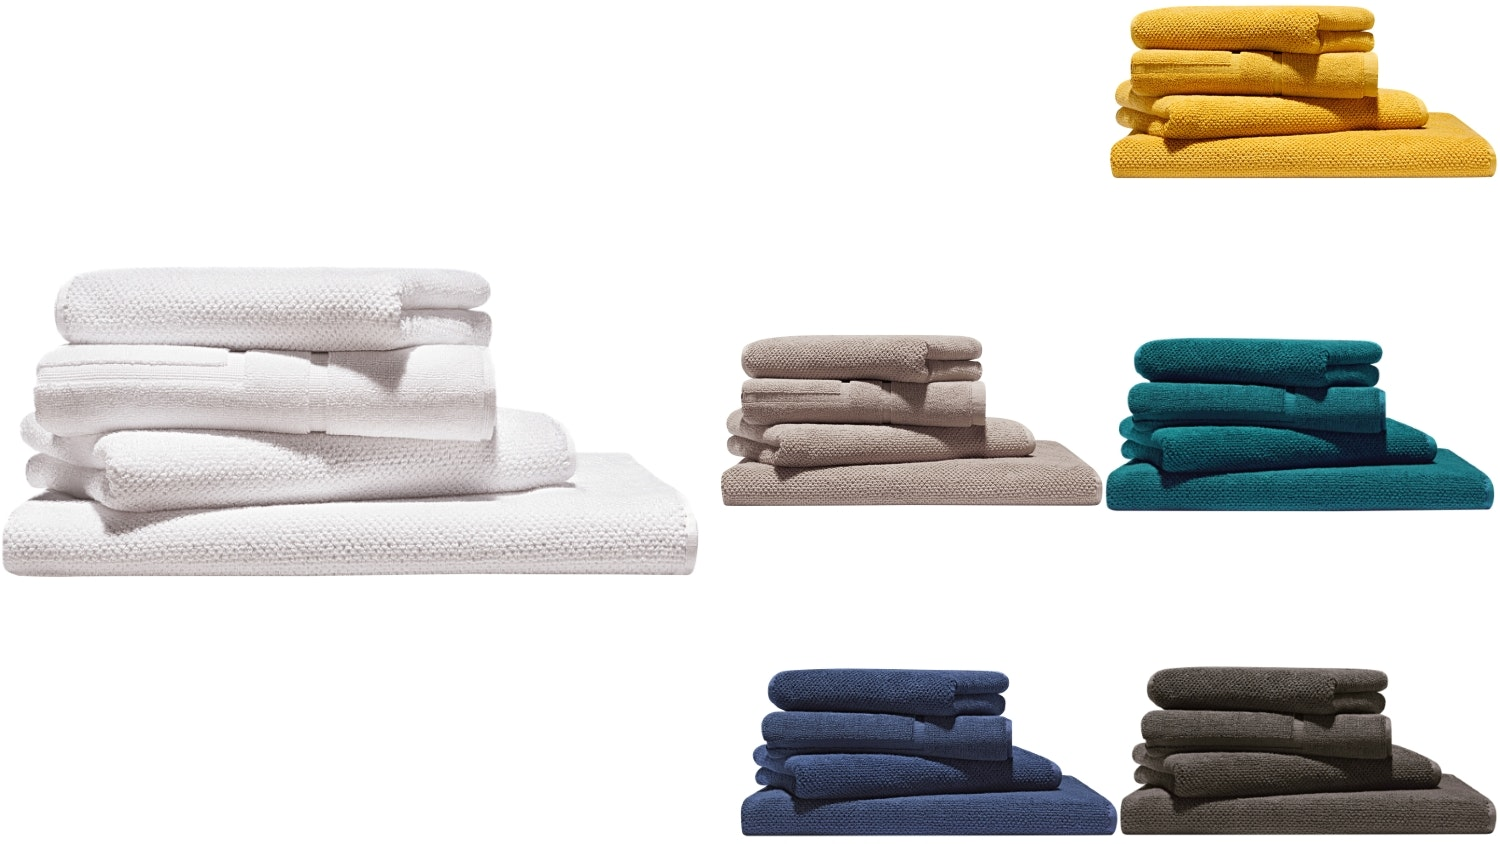 Brixton Bath Towel